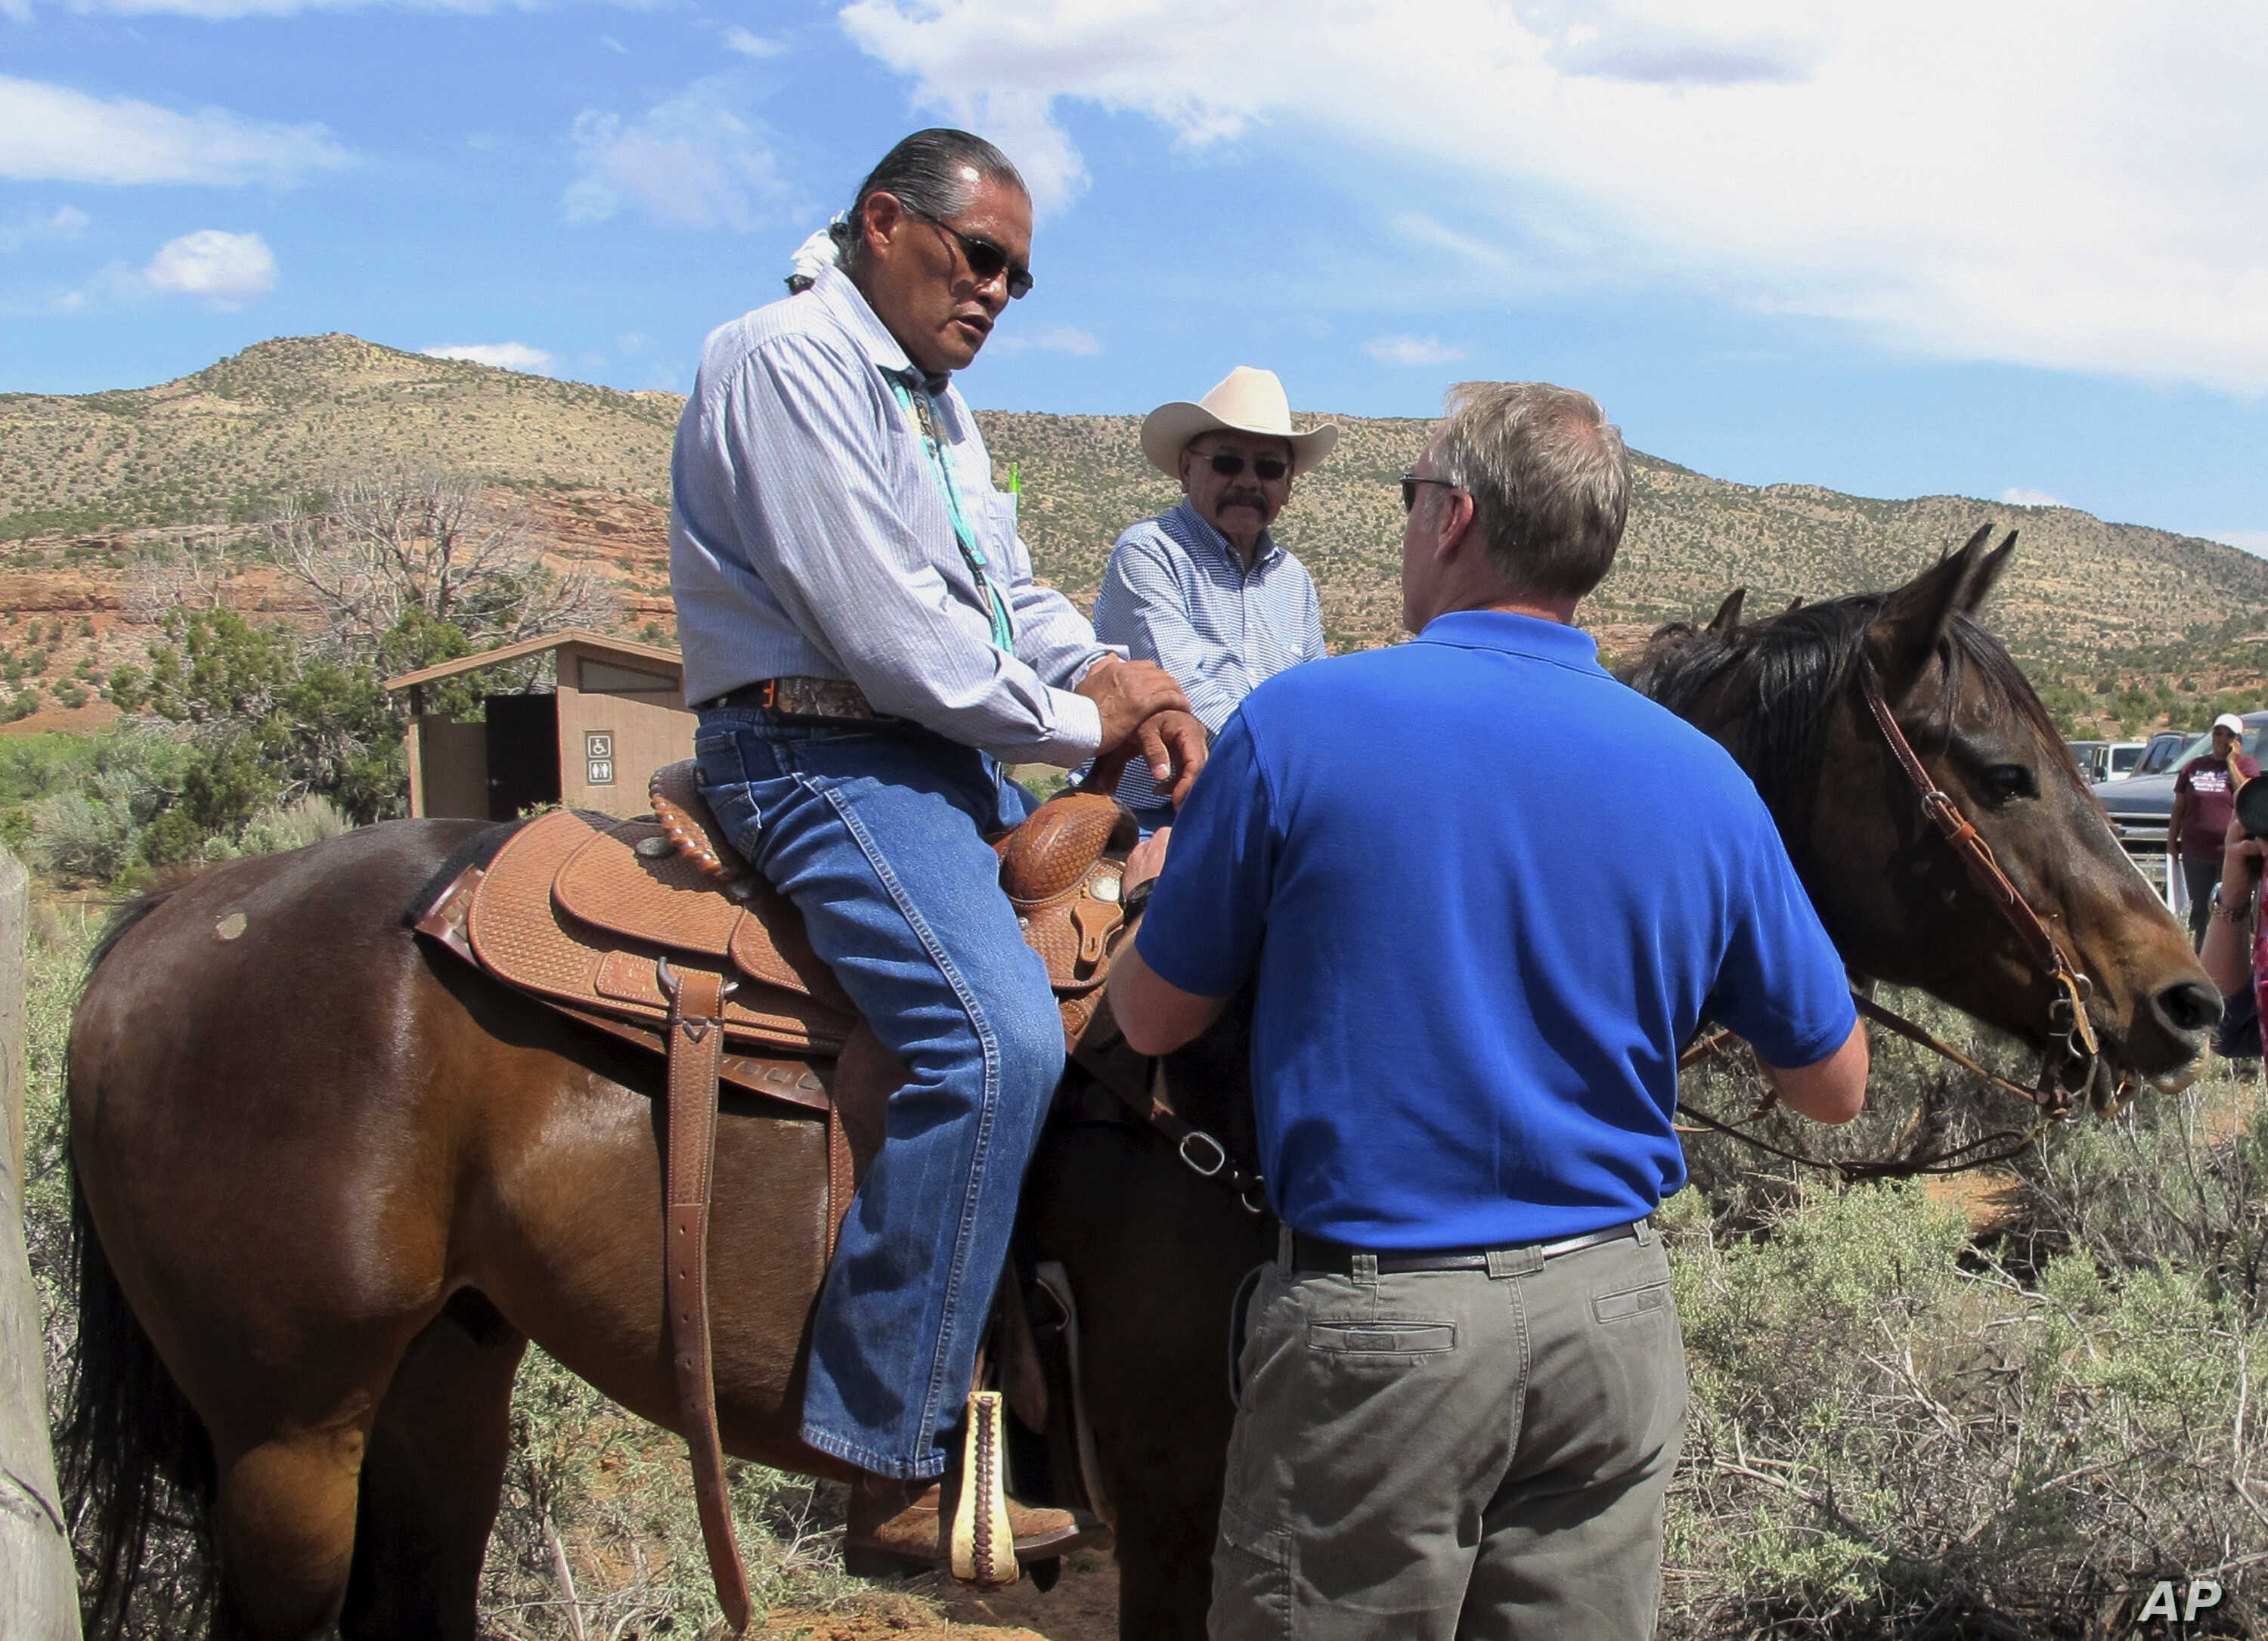 Interior Secretary Ryan Zinke, right, talks with two men on horses, May 8, 2017, at the Butler Wash trailhead within Bears Ears National Monument near Blanding, Utah.